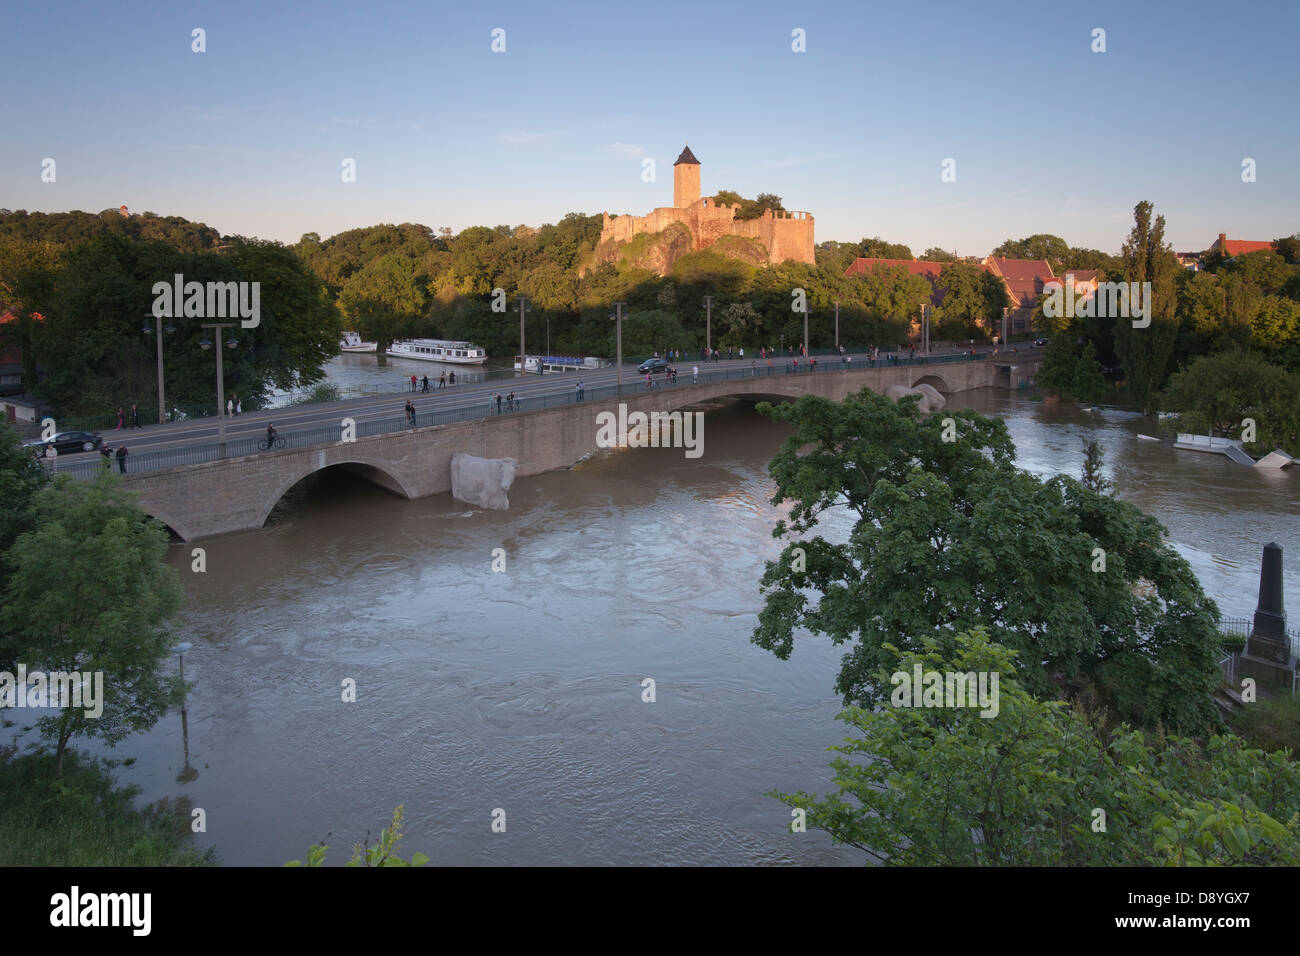 castle and bridge Giebichenstein during flood of river Saale in Halle; Germany, 5th  June 2013 - Stock Image